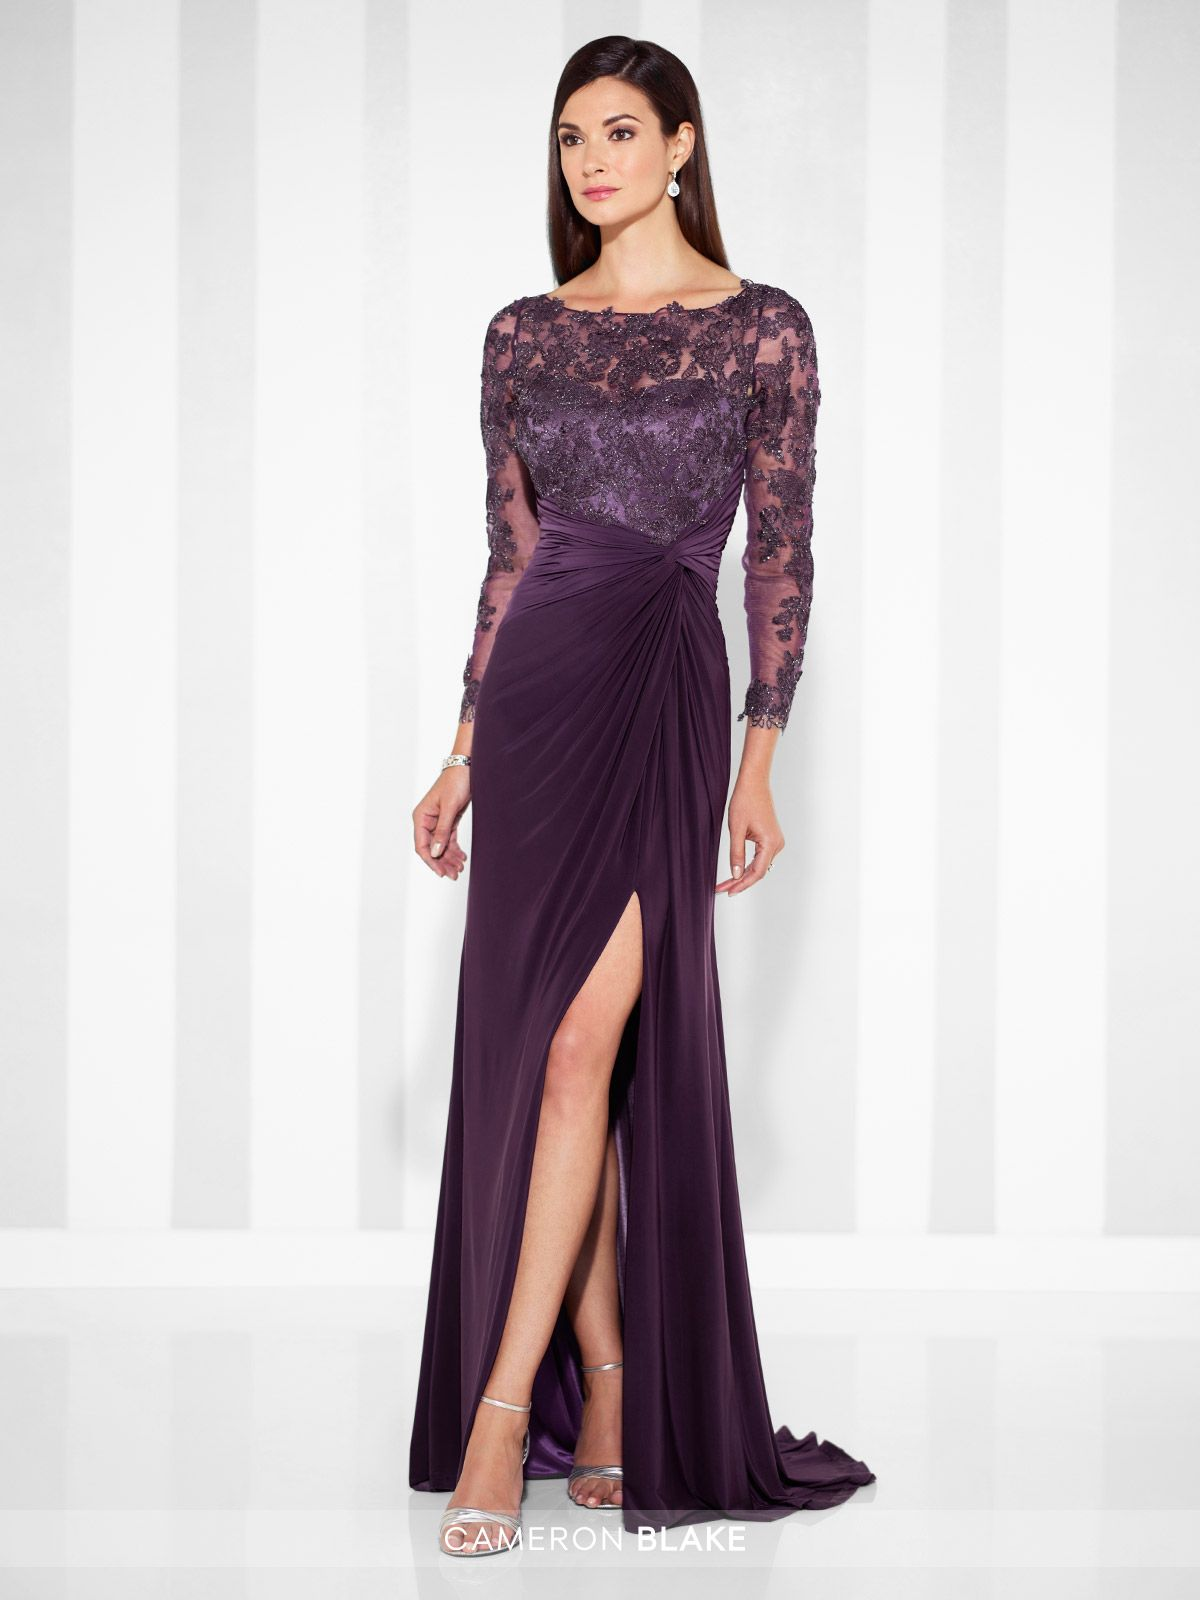 ec0f5c8b549c Cameron Blake - 117613 - Sleeveless jersey fit and flare gown with  hand-beaded metallic lace illusion front and back bateau necklines,  sweetheart bodice, ...